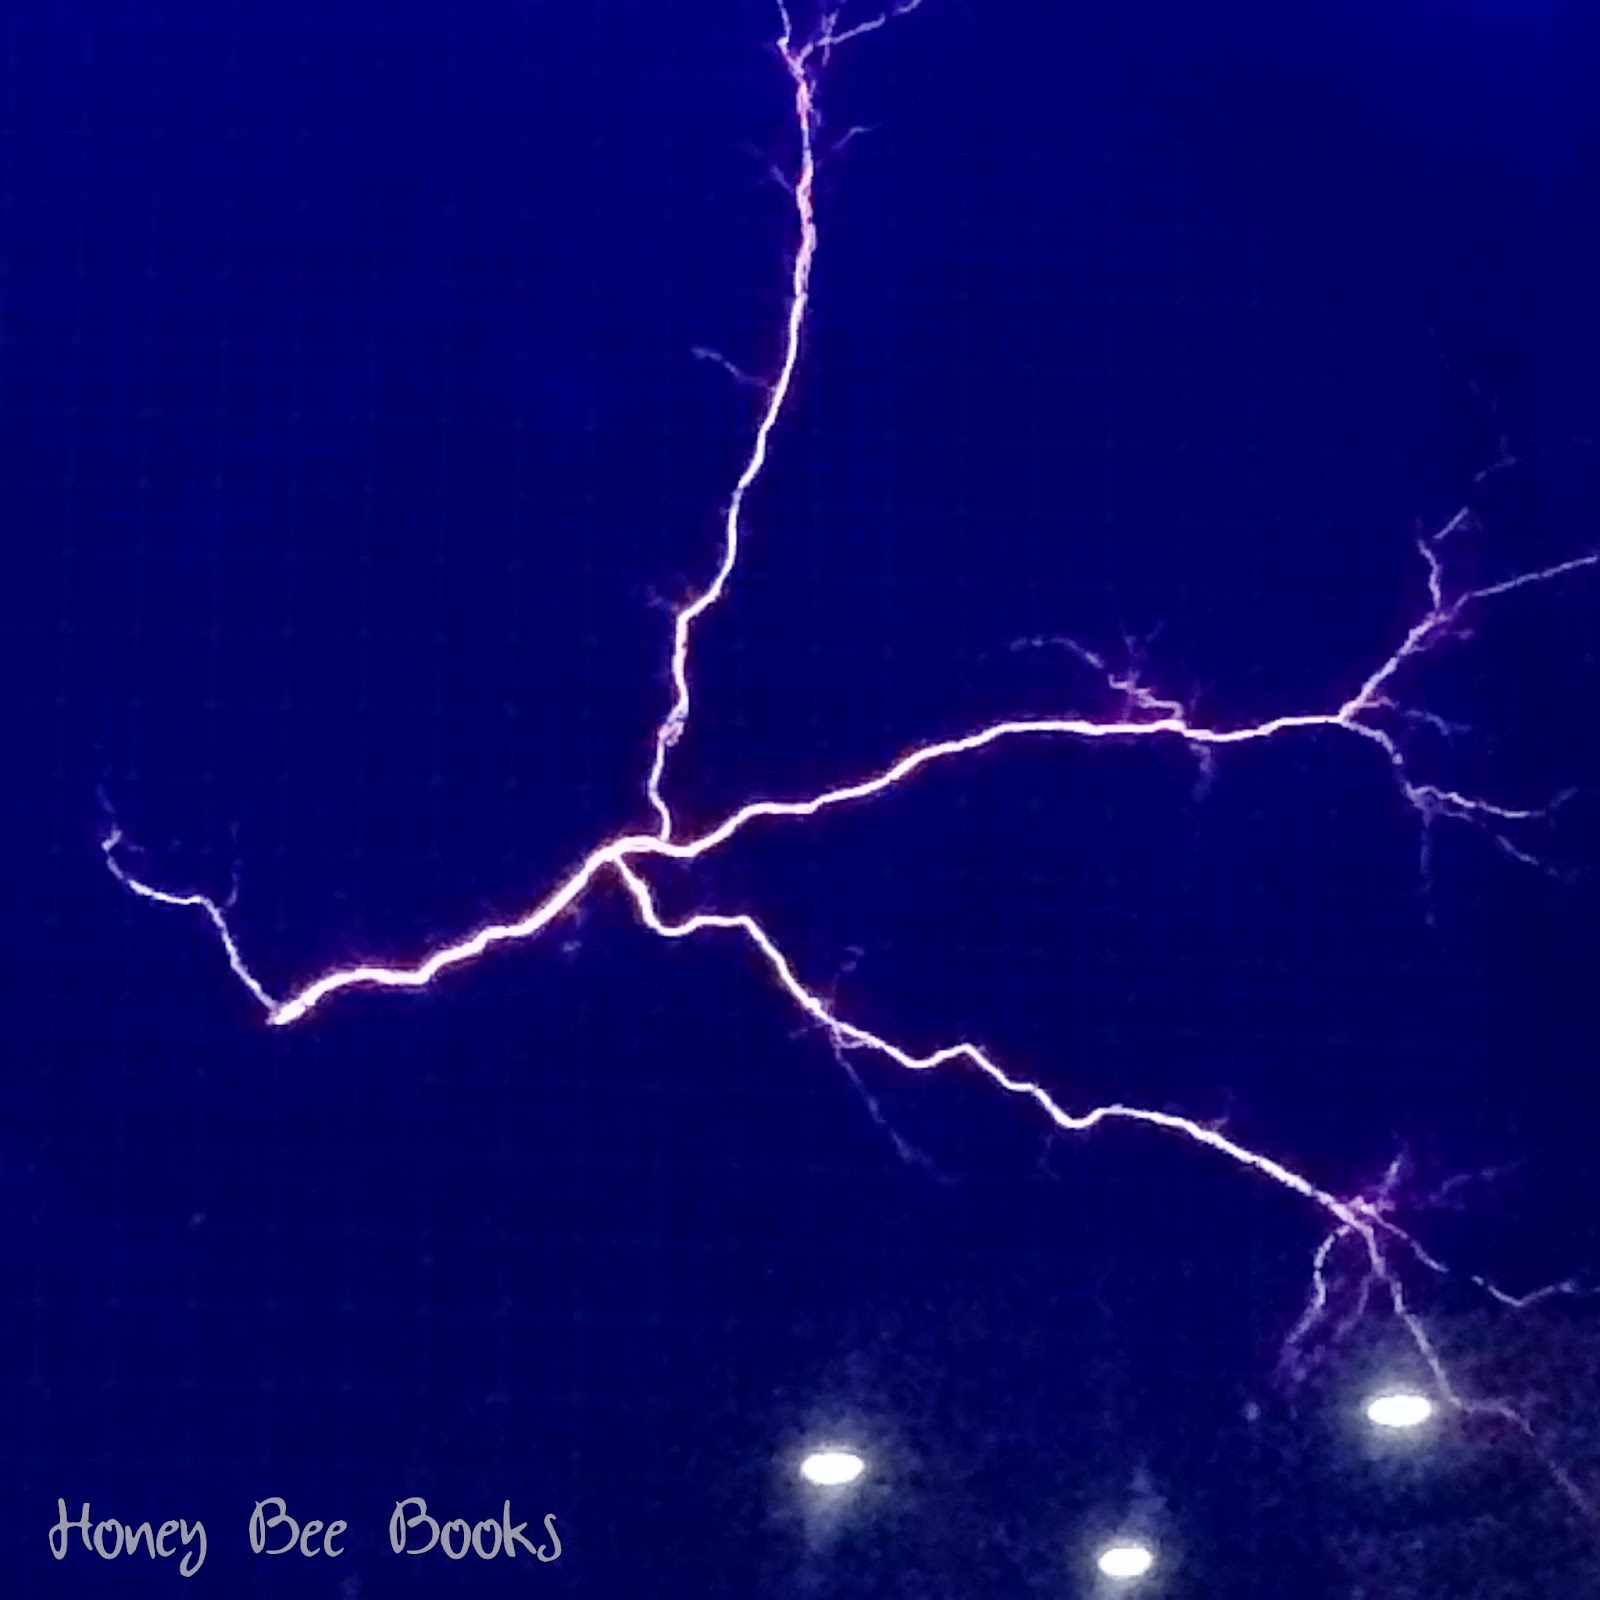 Lightning strike in the Awesome Earth Gallery, Questacon #humanbrochure